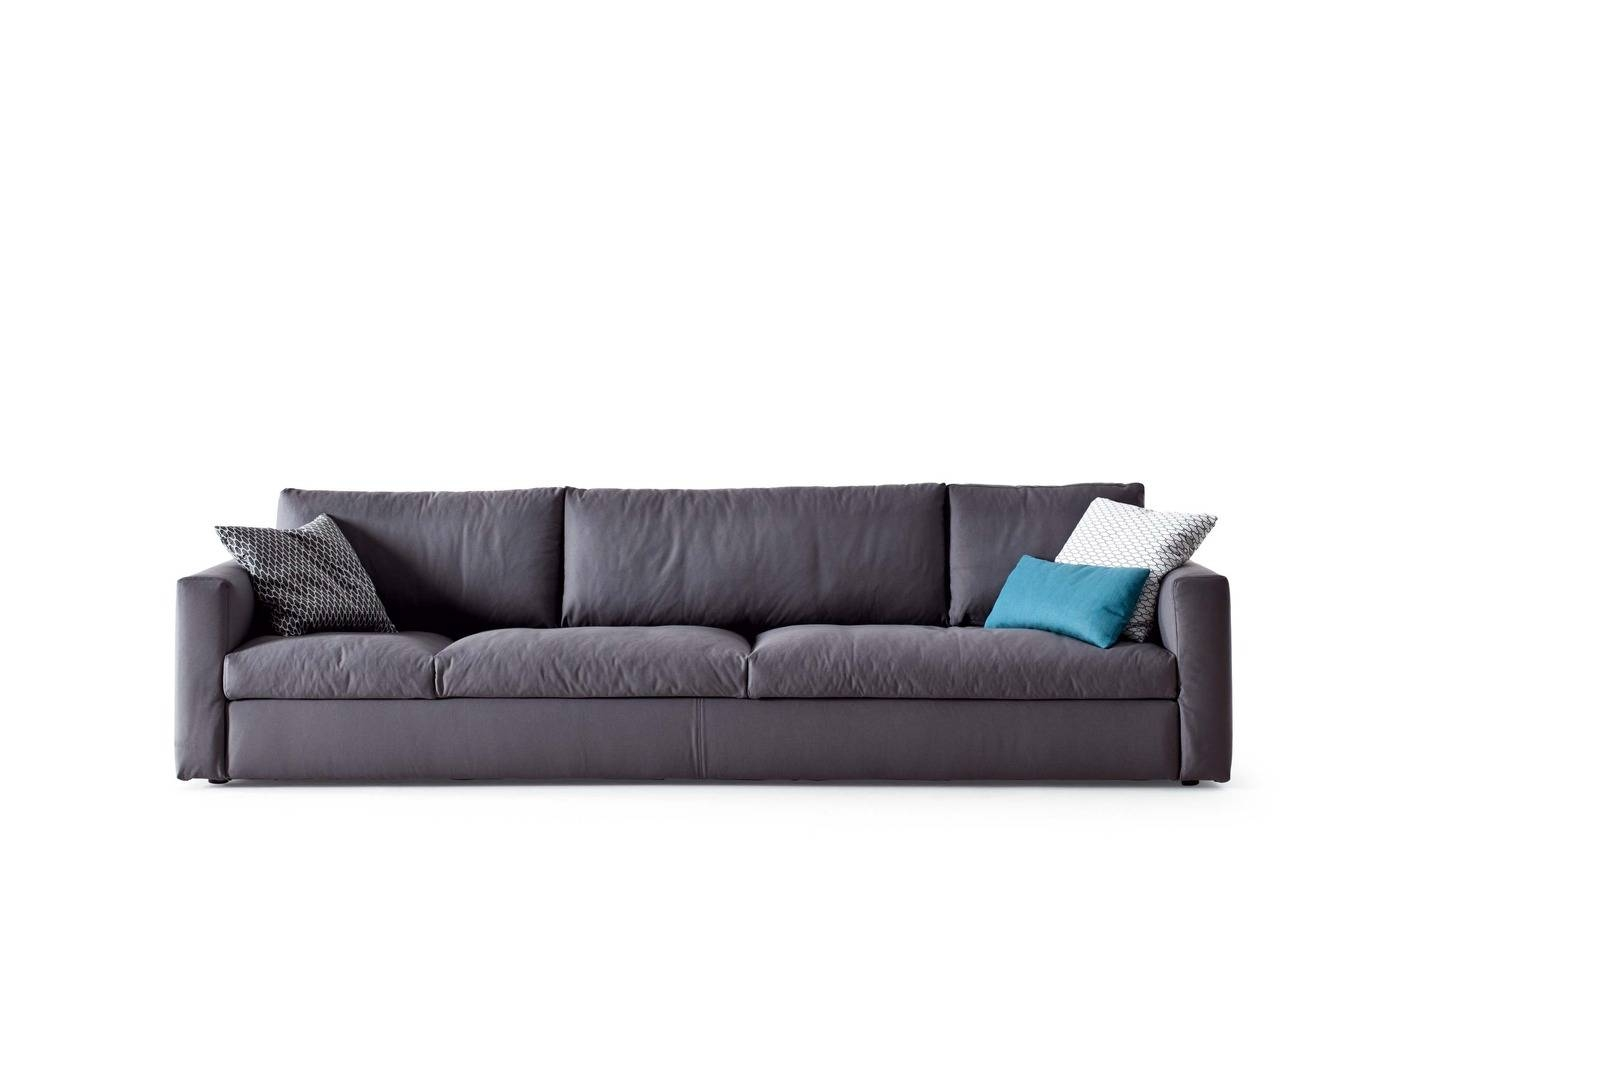 Saba Italia Family | Sofas & Couches | Woont - Love Your Home throughout Family Sofa (Image 30 of 30)